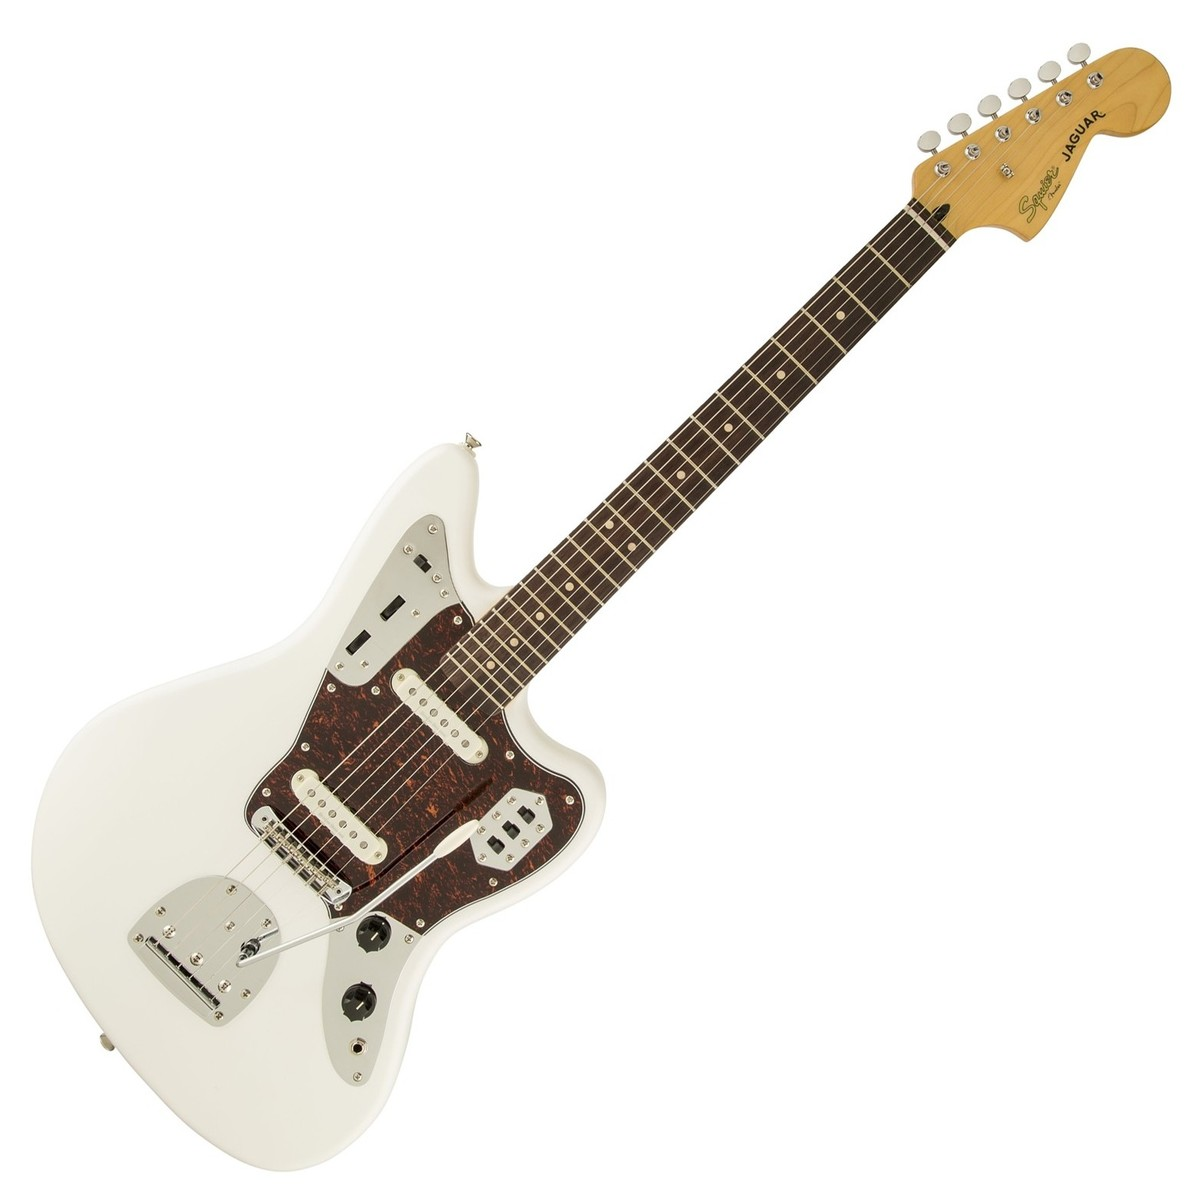 squier vintage modified jaguar olympic white at gear4music. Black Bedroom Furniture Sets. Home Design Ideas